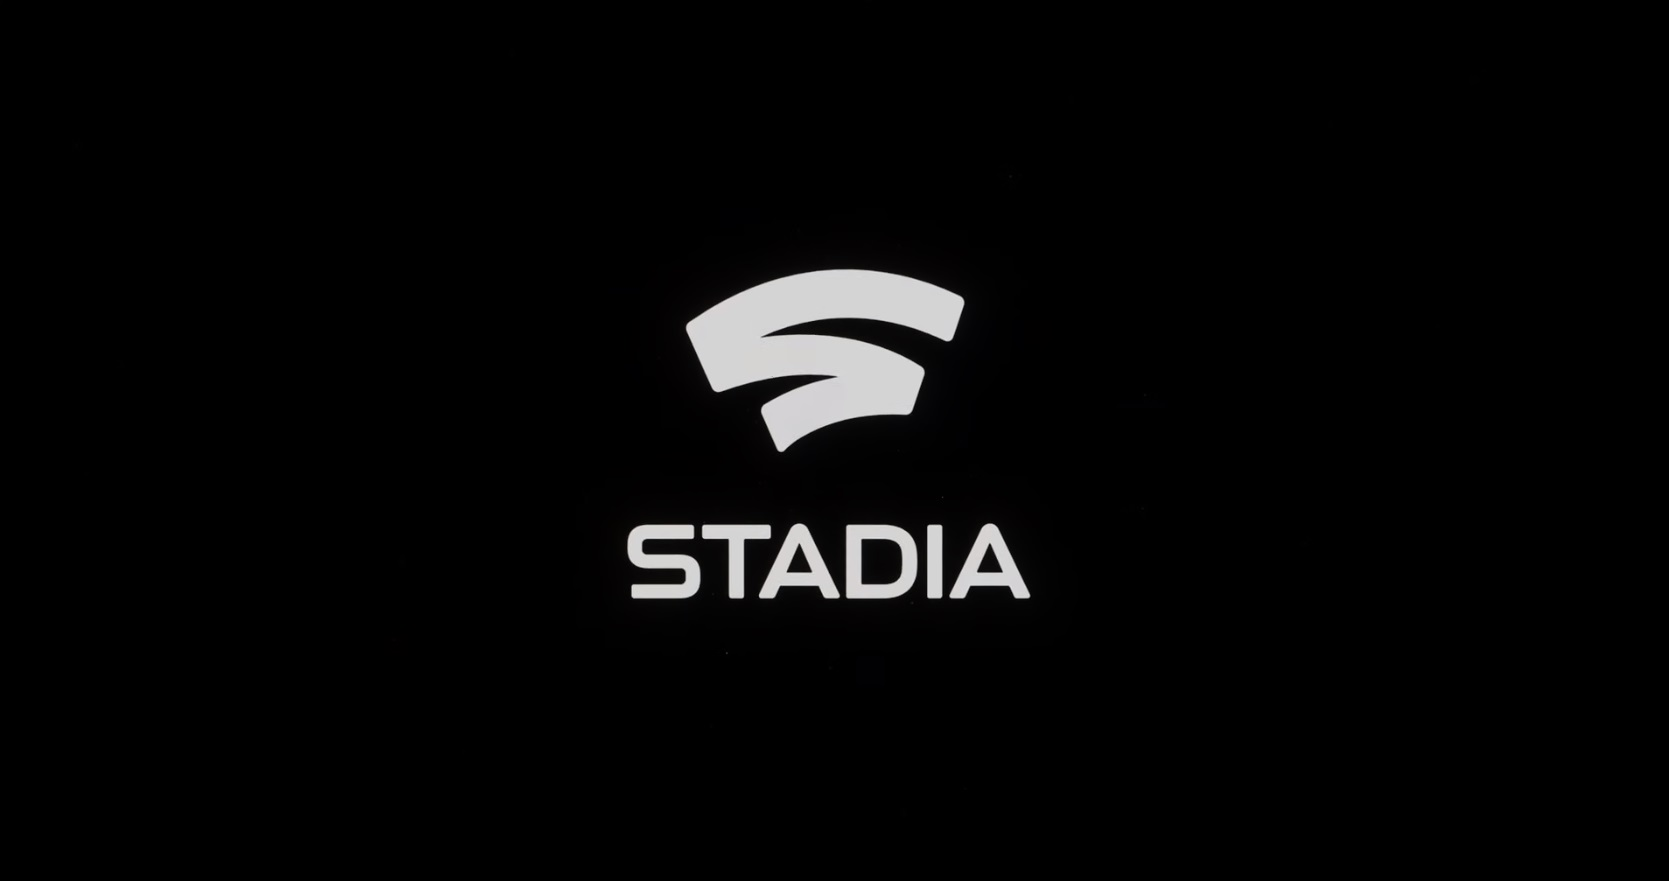 Googles neue Game-Streaming-Plattform heißt Stadia